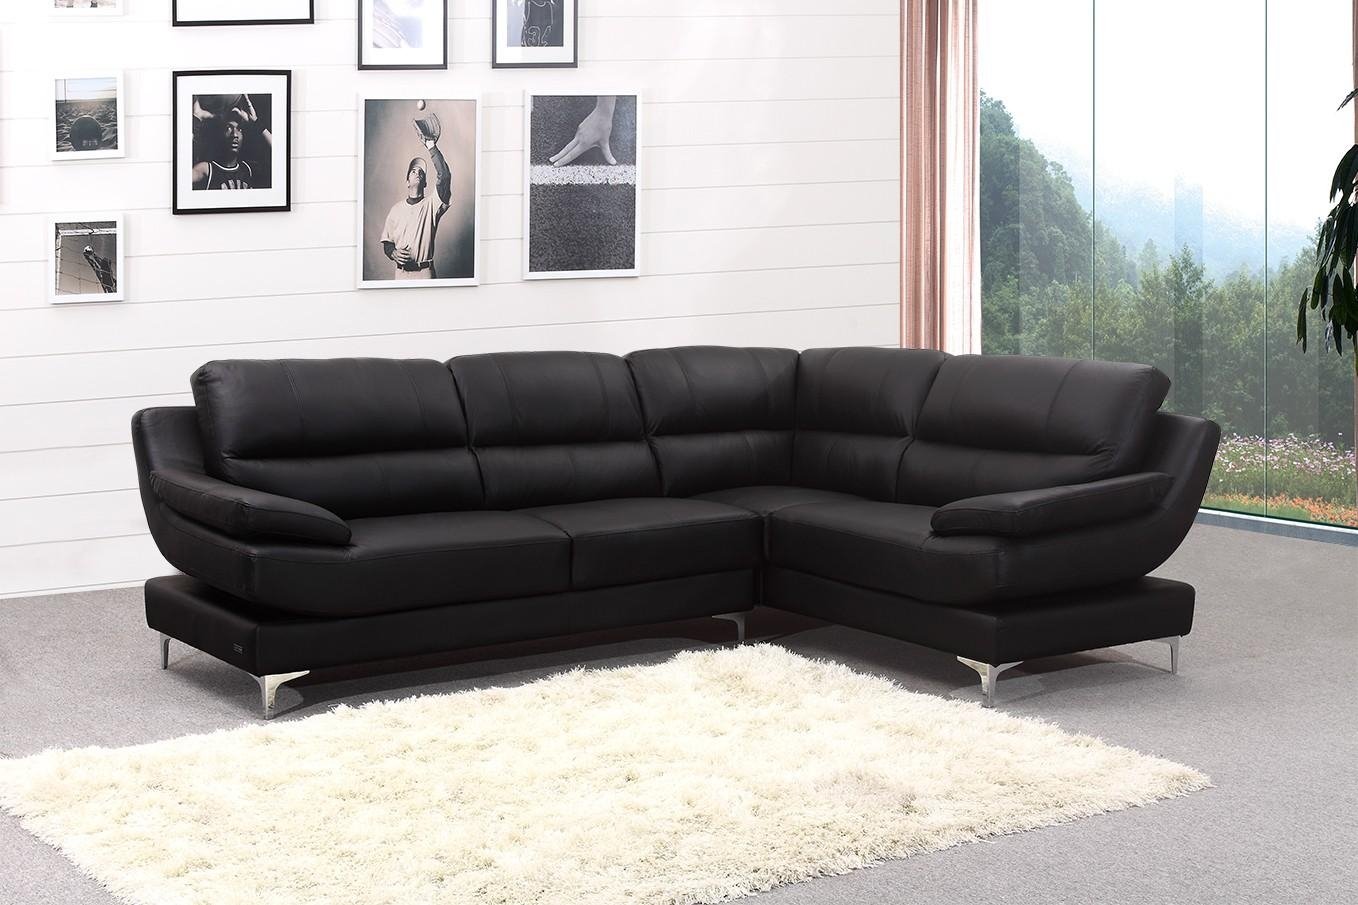 stylish affordable sofas uk high back modern leather sofa 20 43 choices of black corner ideas